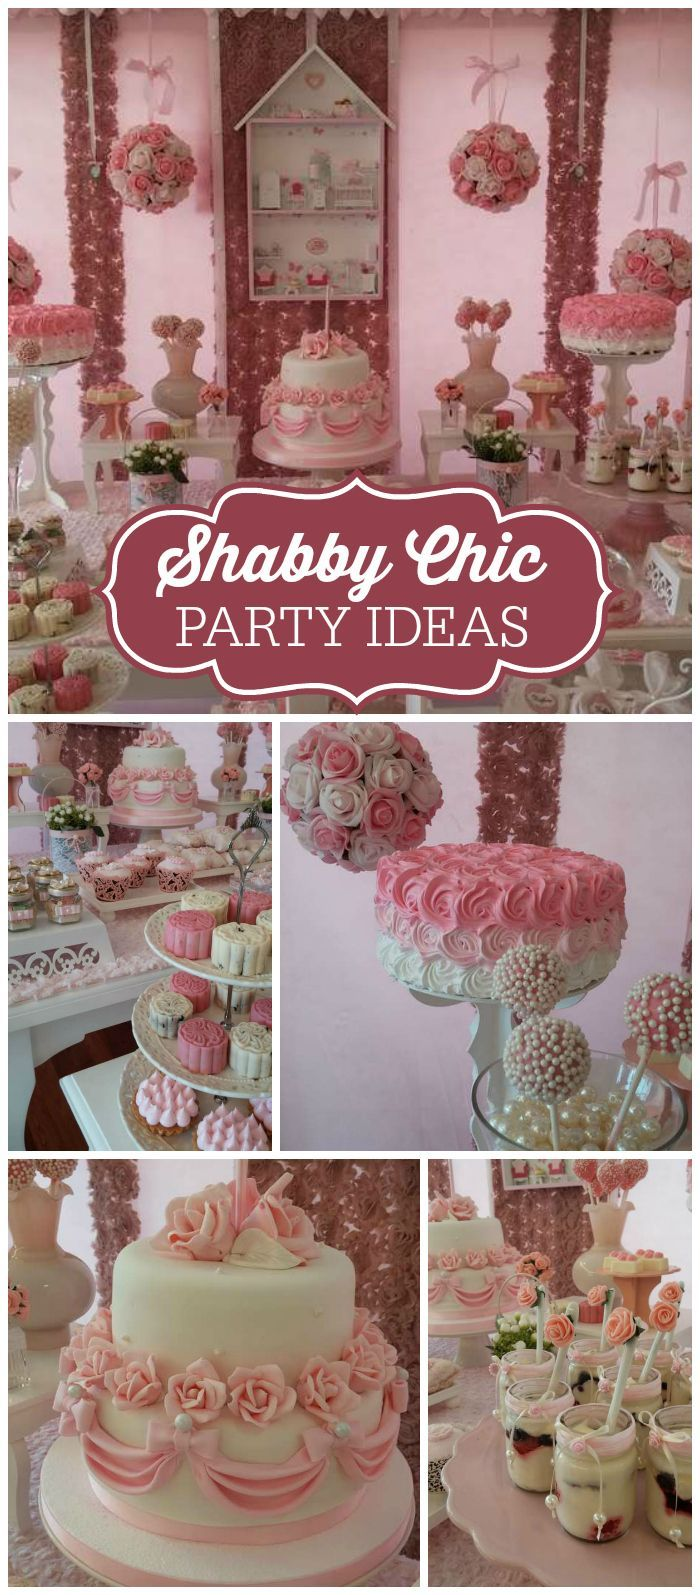 Birthday party decor: Birthday party decor